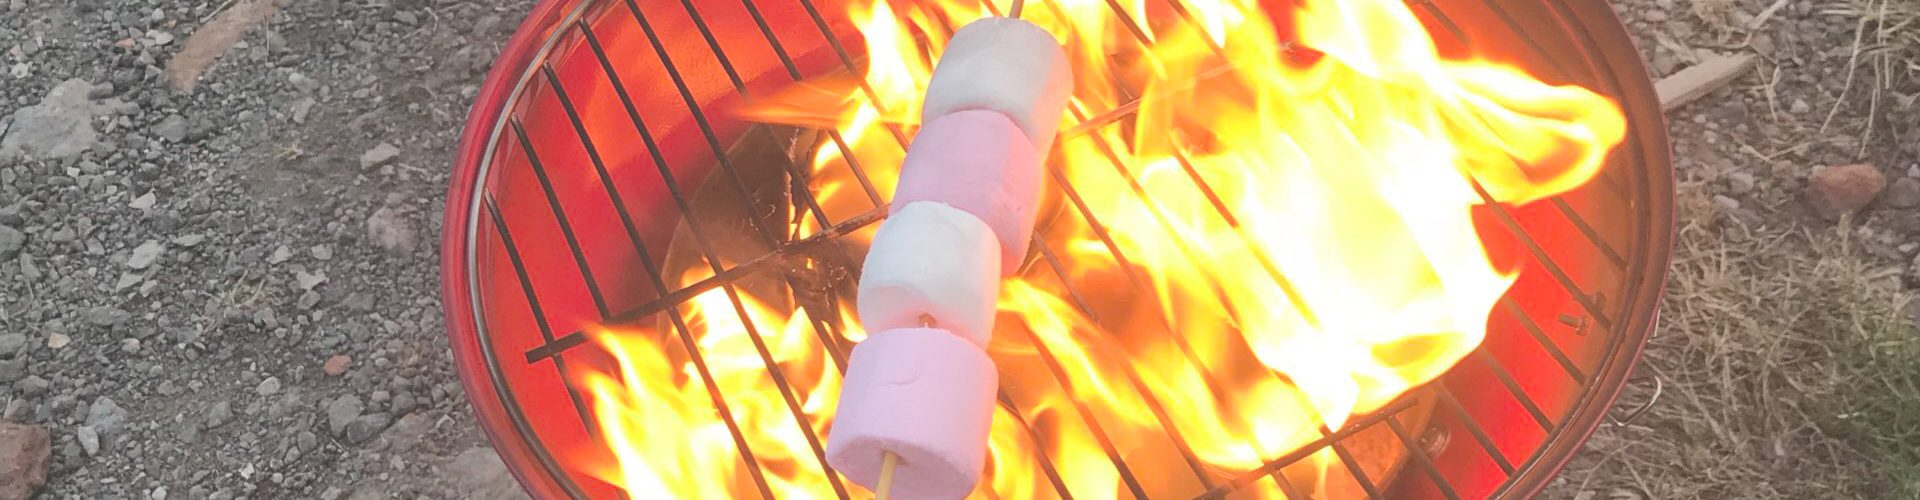 marshmallows toasting on a fire pit